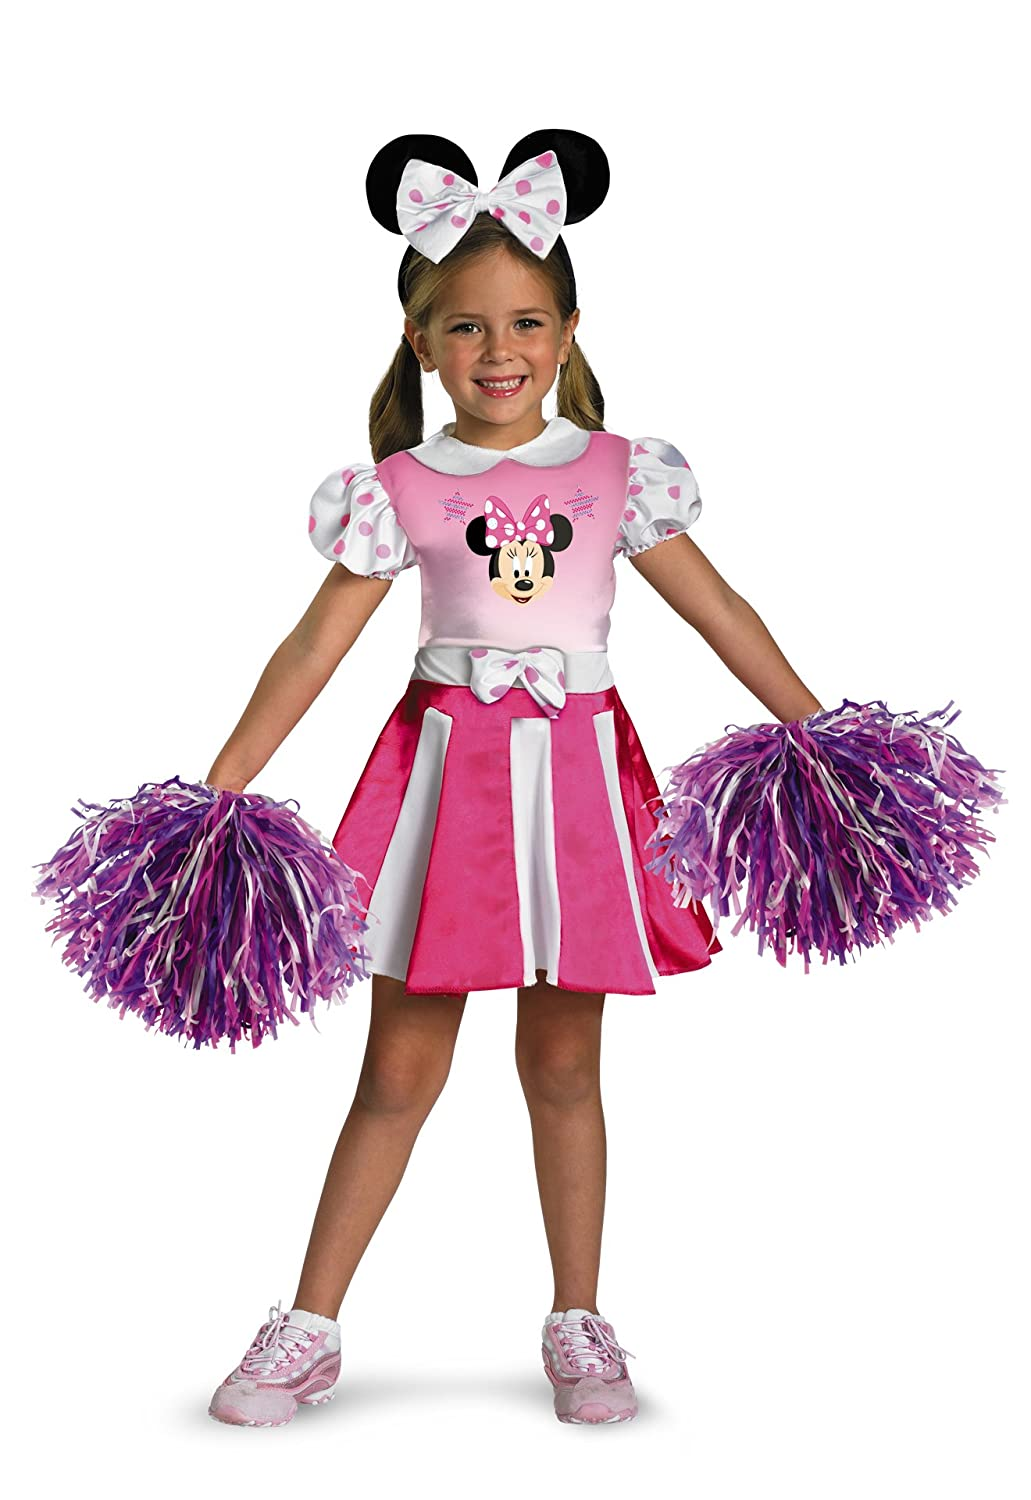 Amazon.com: Minnie Mouse Cheerleader Costume - Toddler Small(2T ...